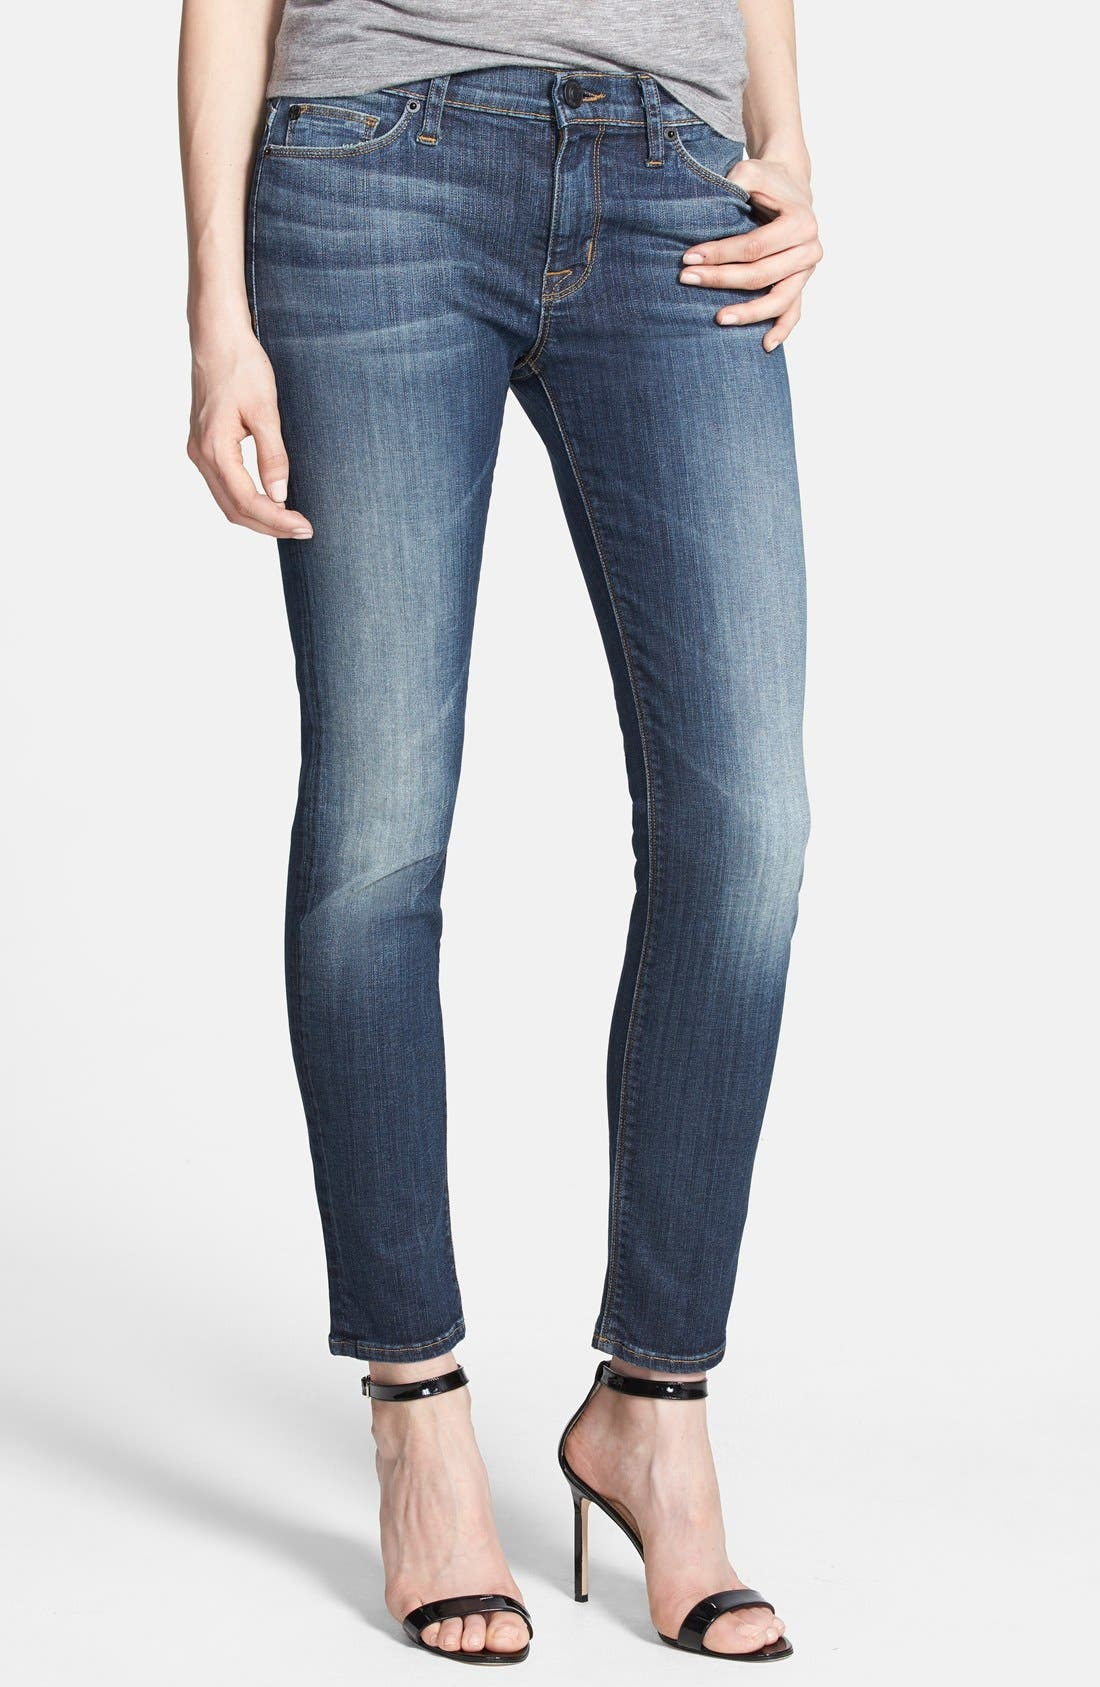 Main Image - Hudson Jeans 'Collette' Skinny Ankle Jeans (Glam)